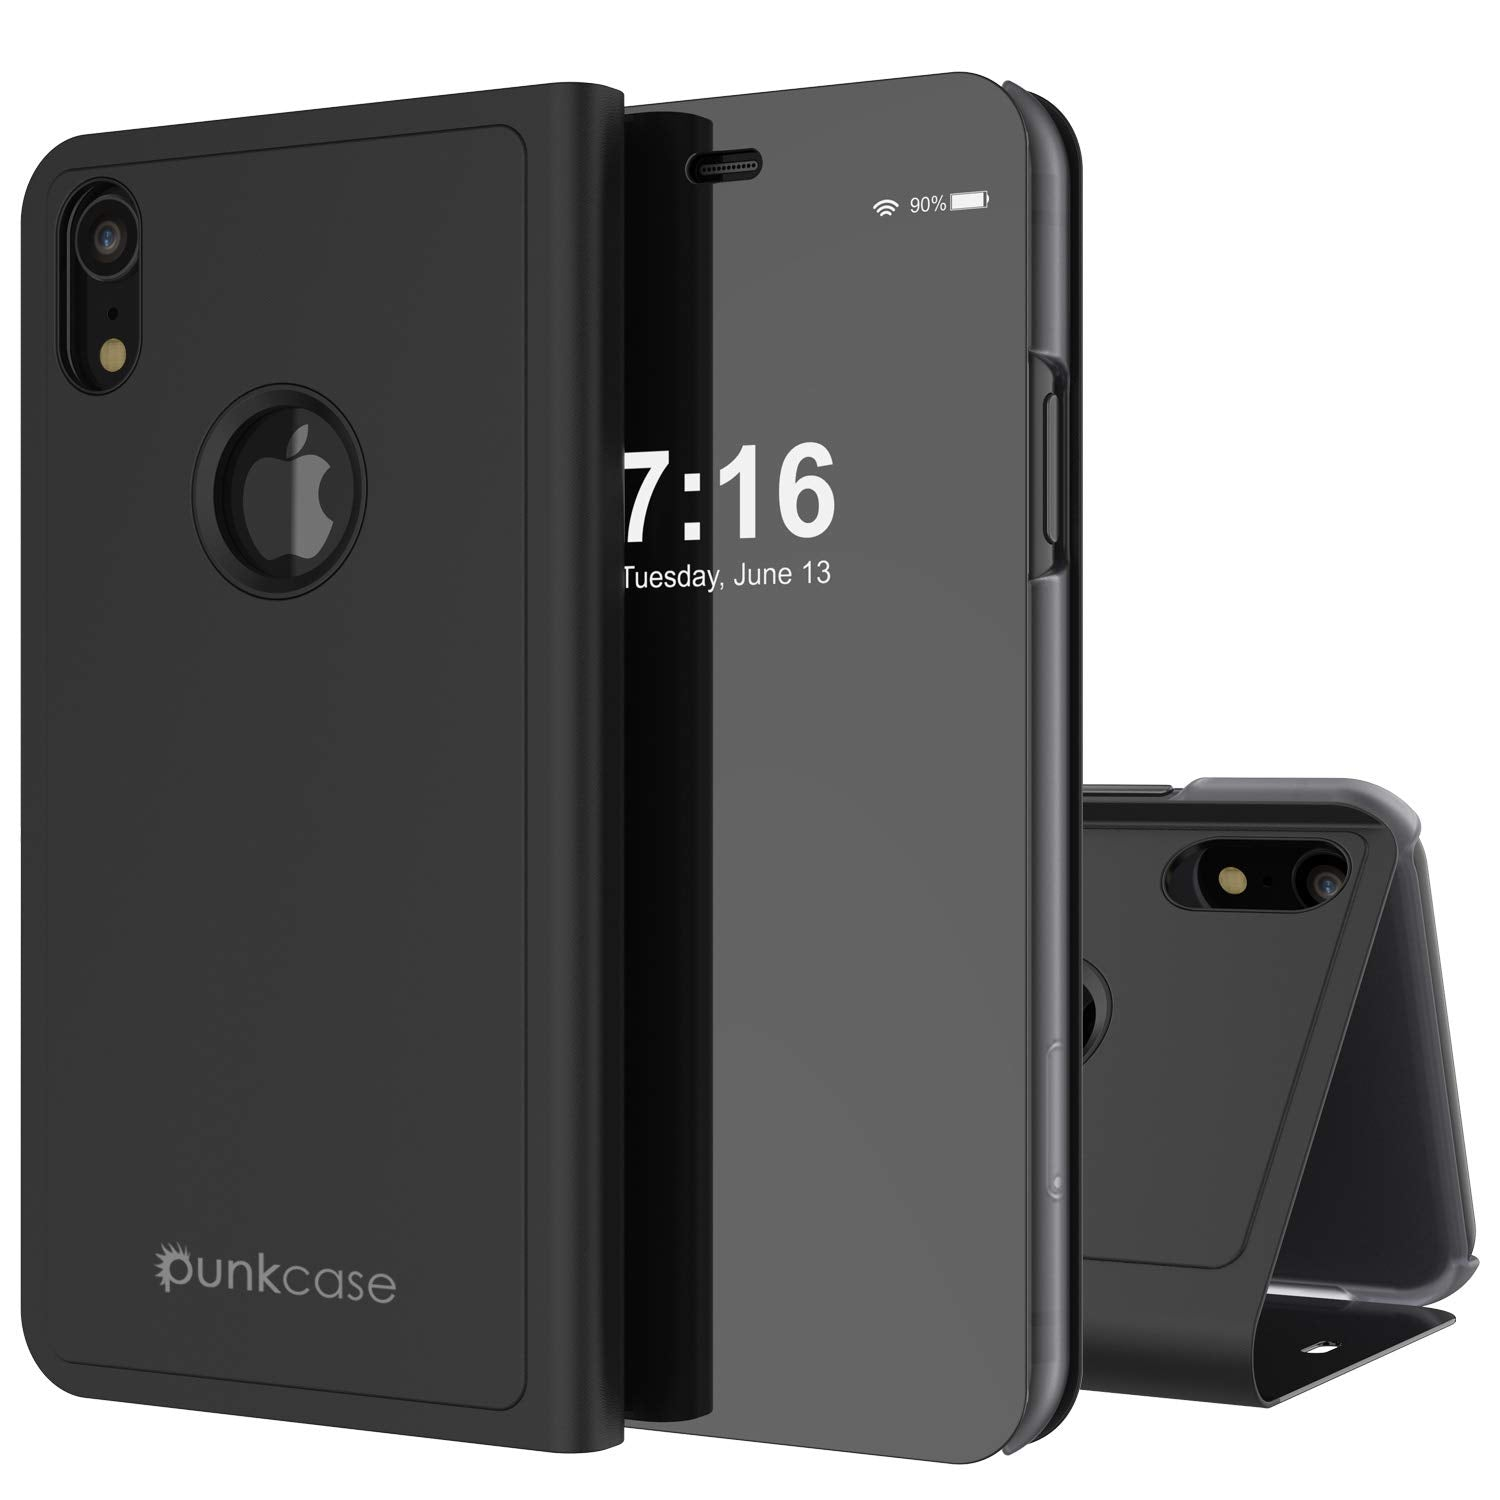 Punkcase iPhone XR Reflector Case Protective Flip Cover [Black]